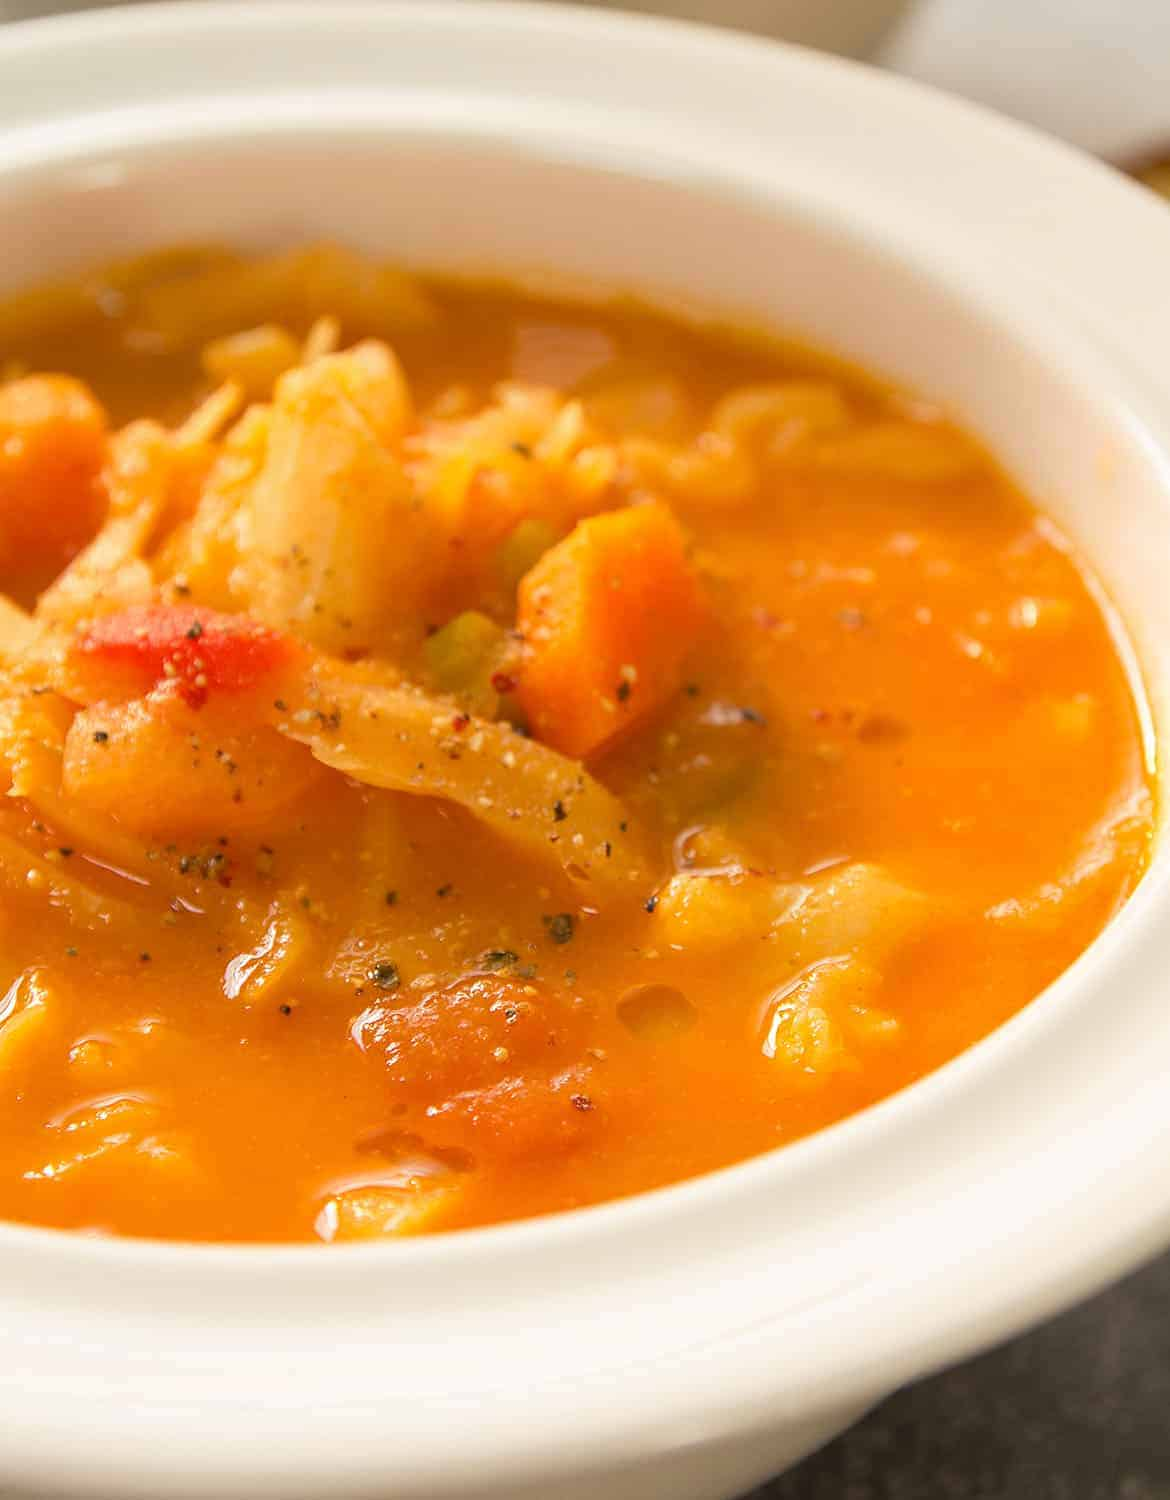 With less than 140 calories per serving, this healthy warming vegetarian cabbage soup is packed with flavor, texture and vegetables in a rich tomato broth.